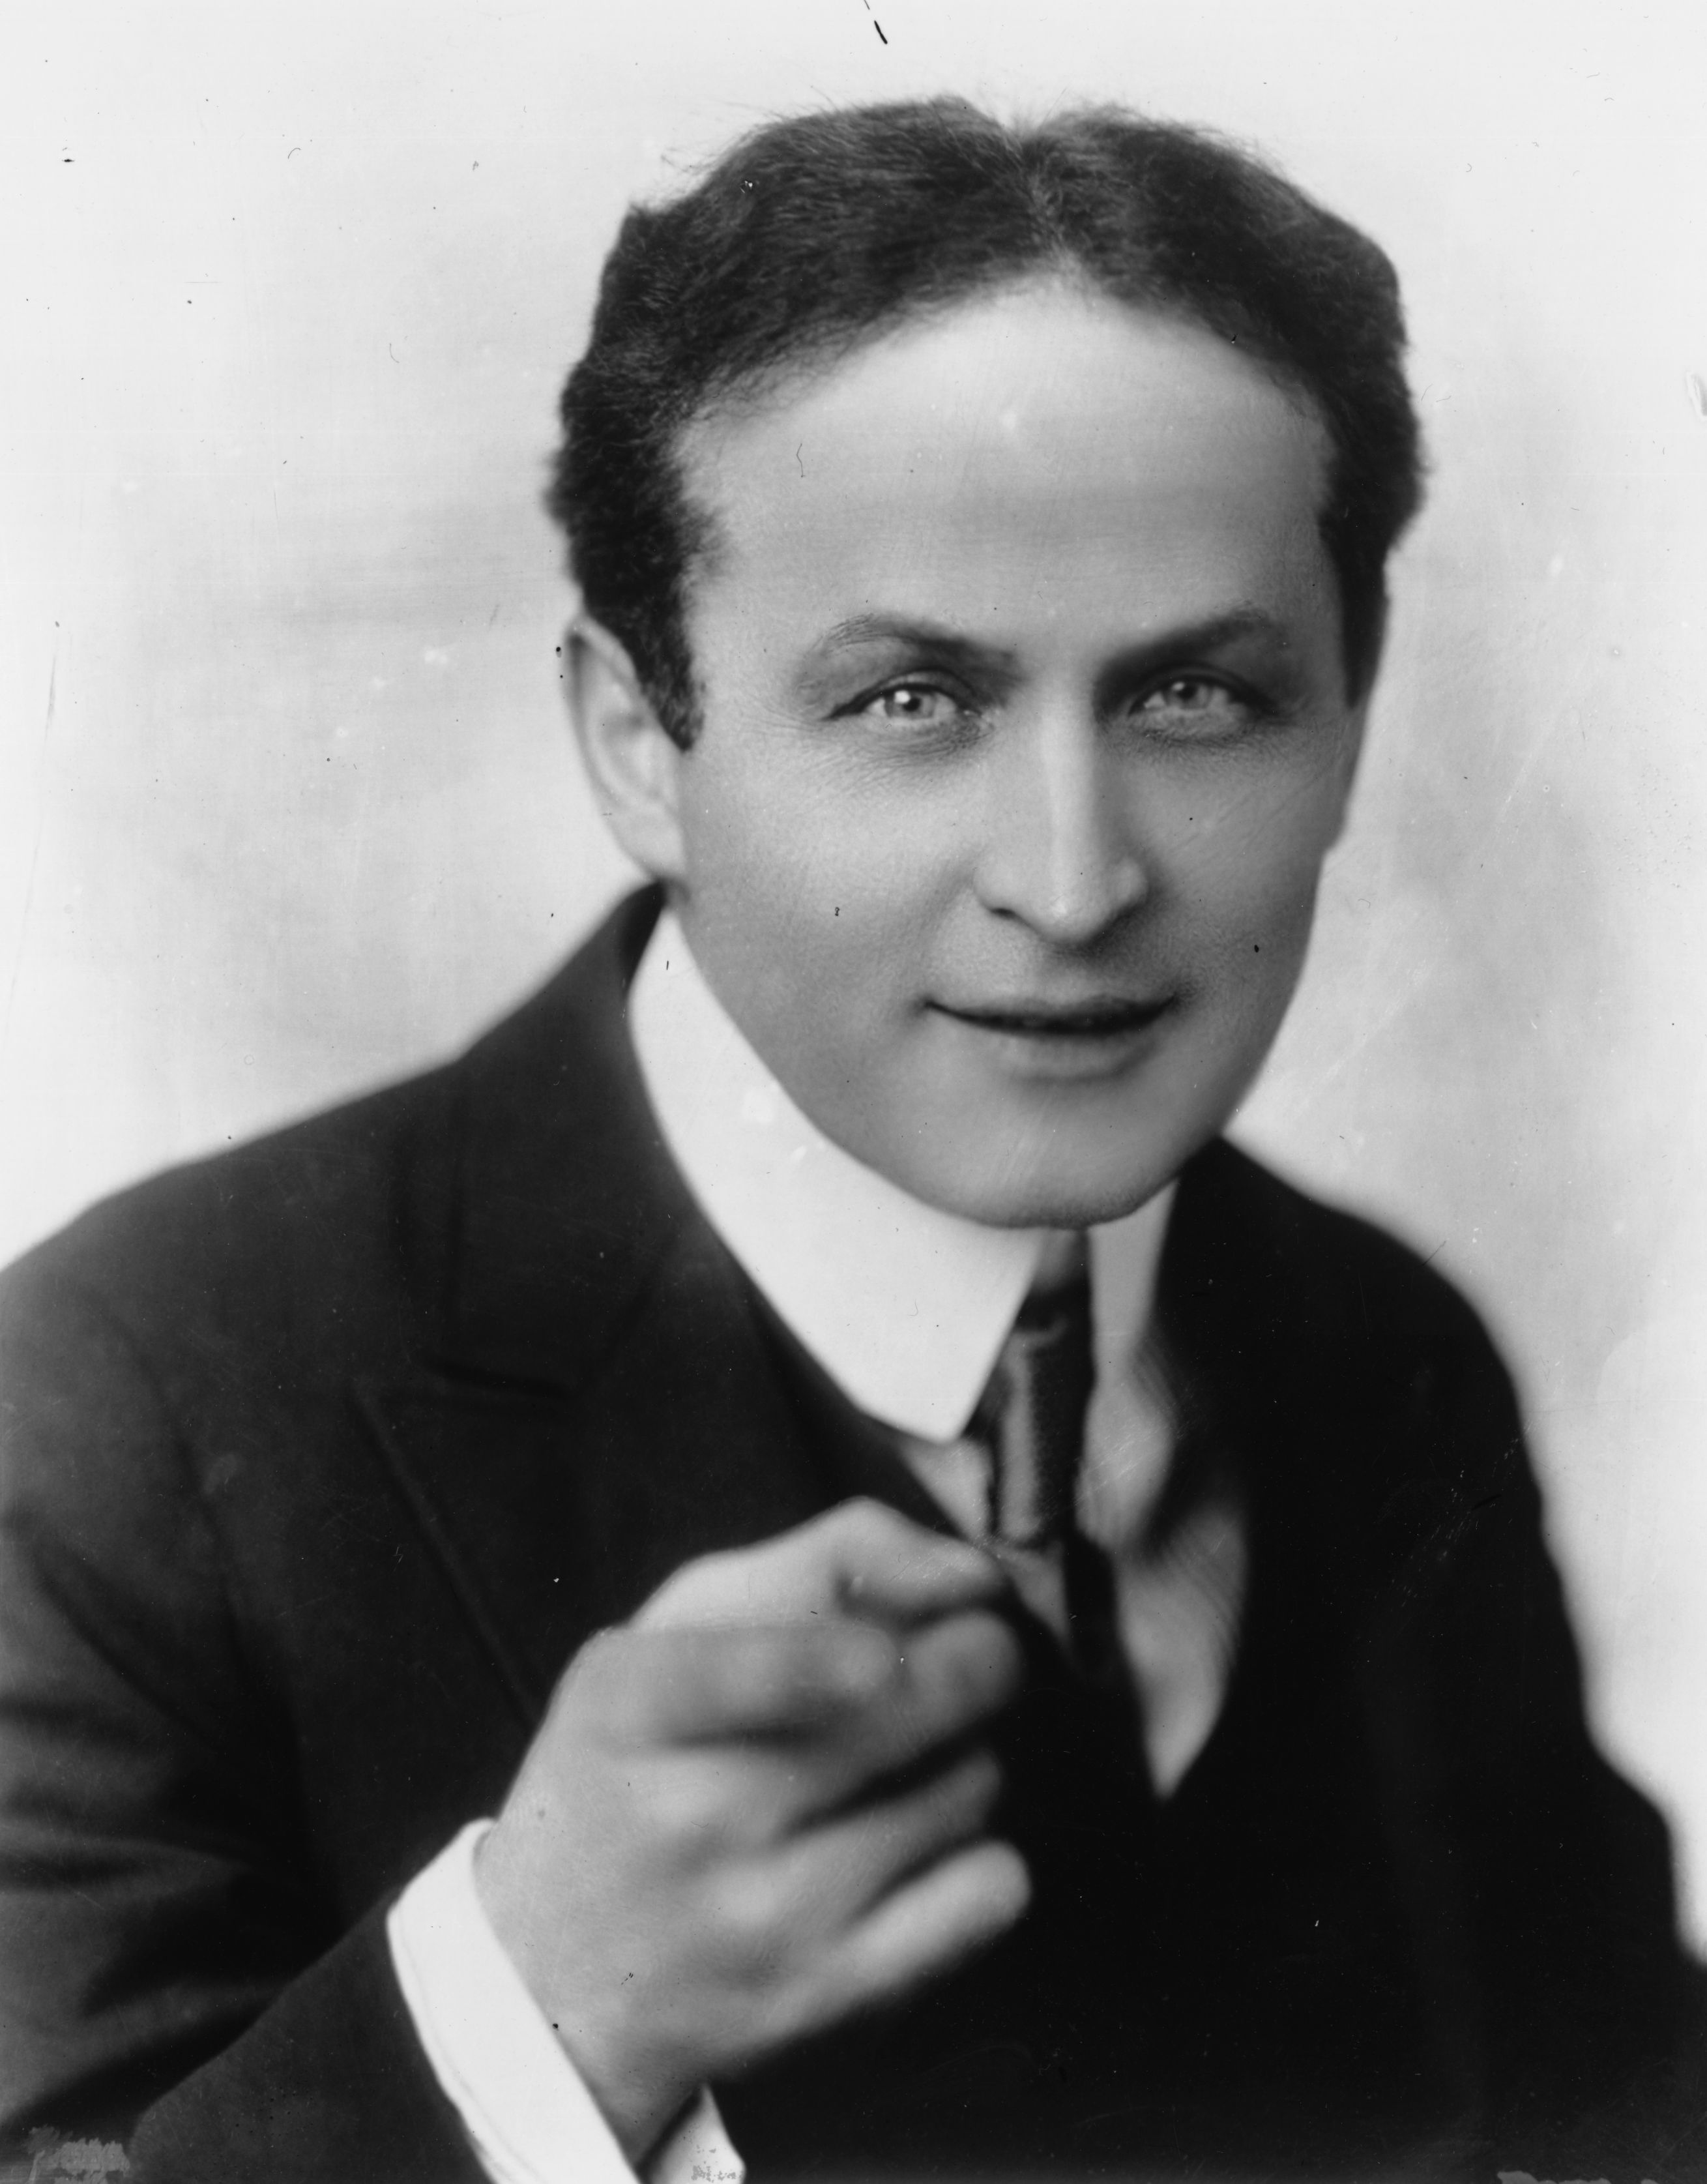 Harry Houdini holds a patent for his Diver Suit invention